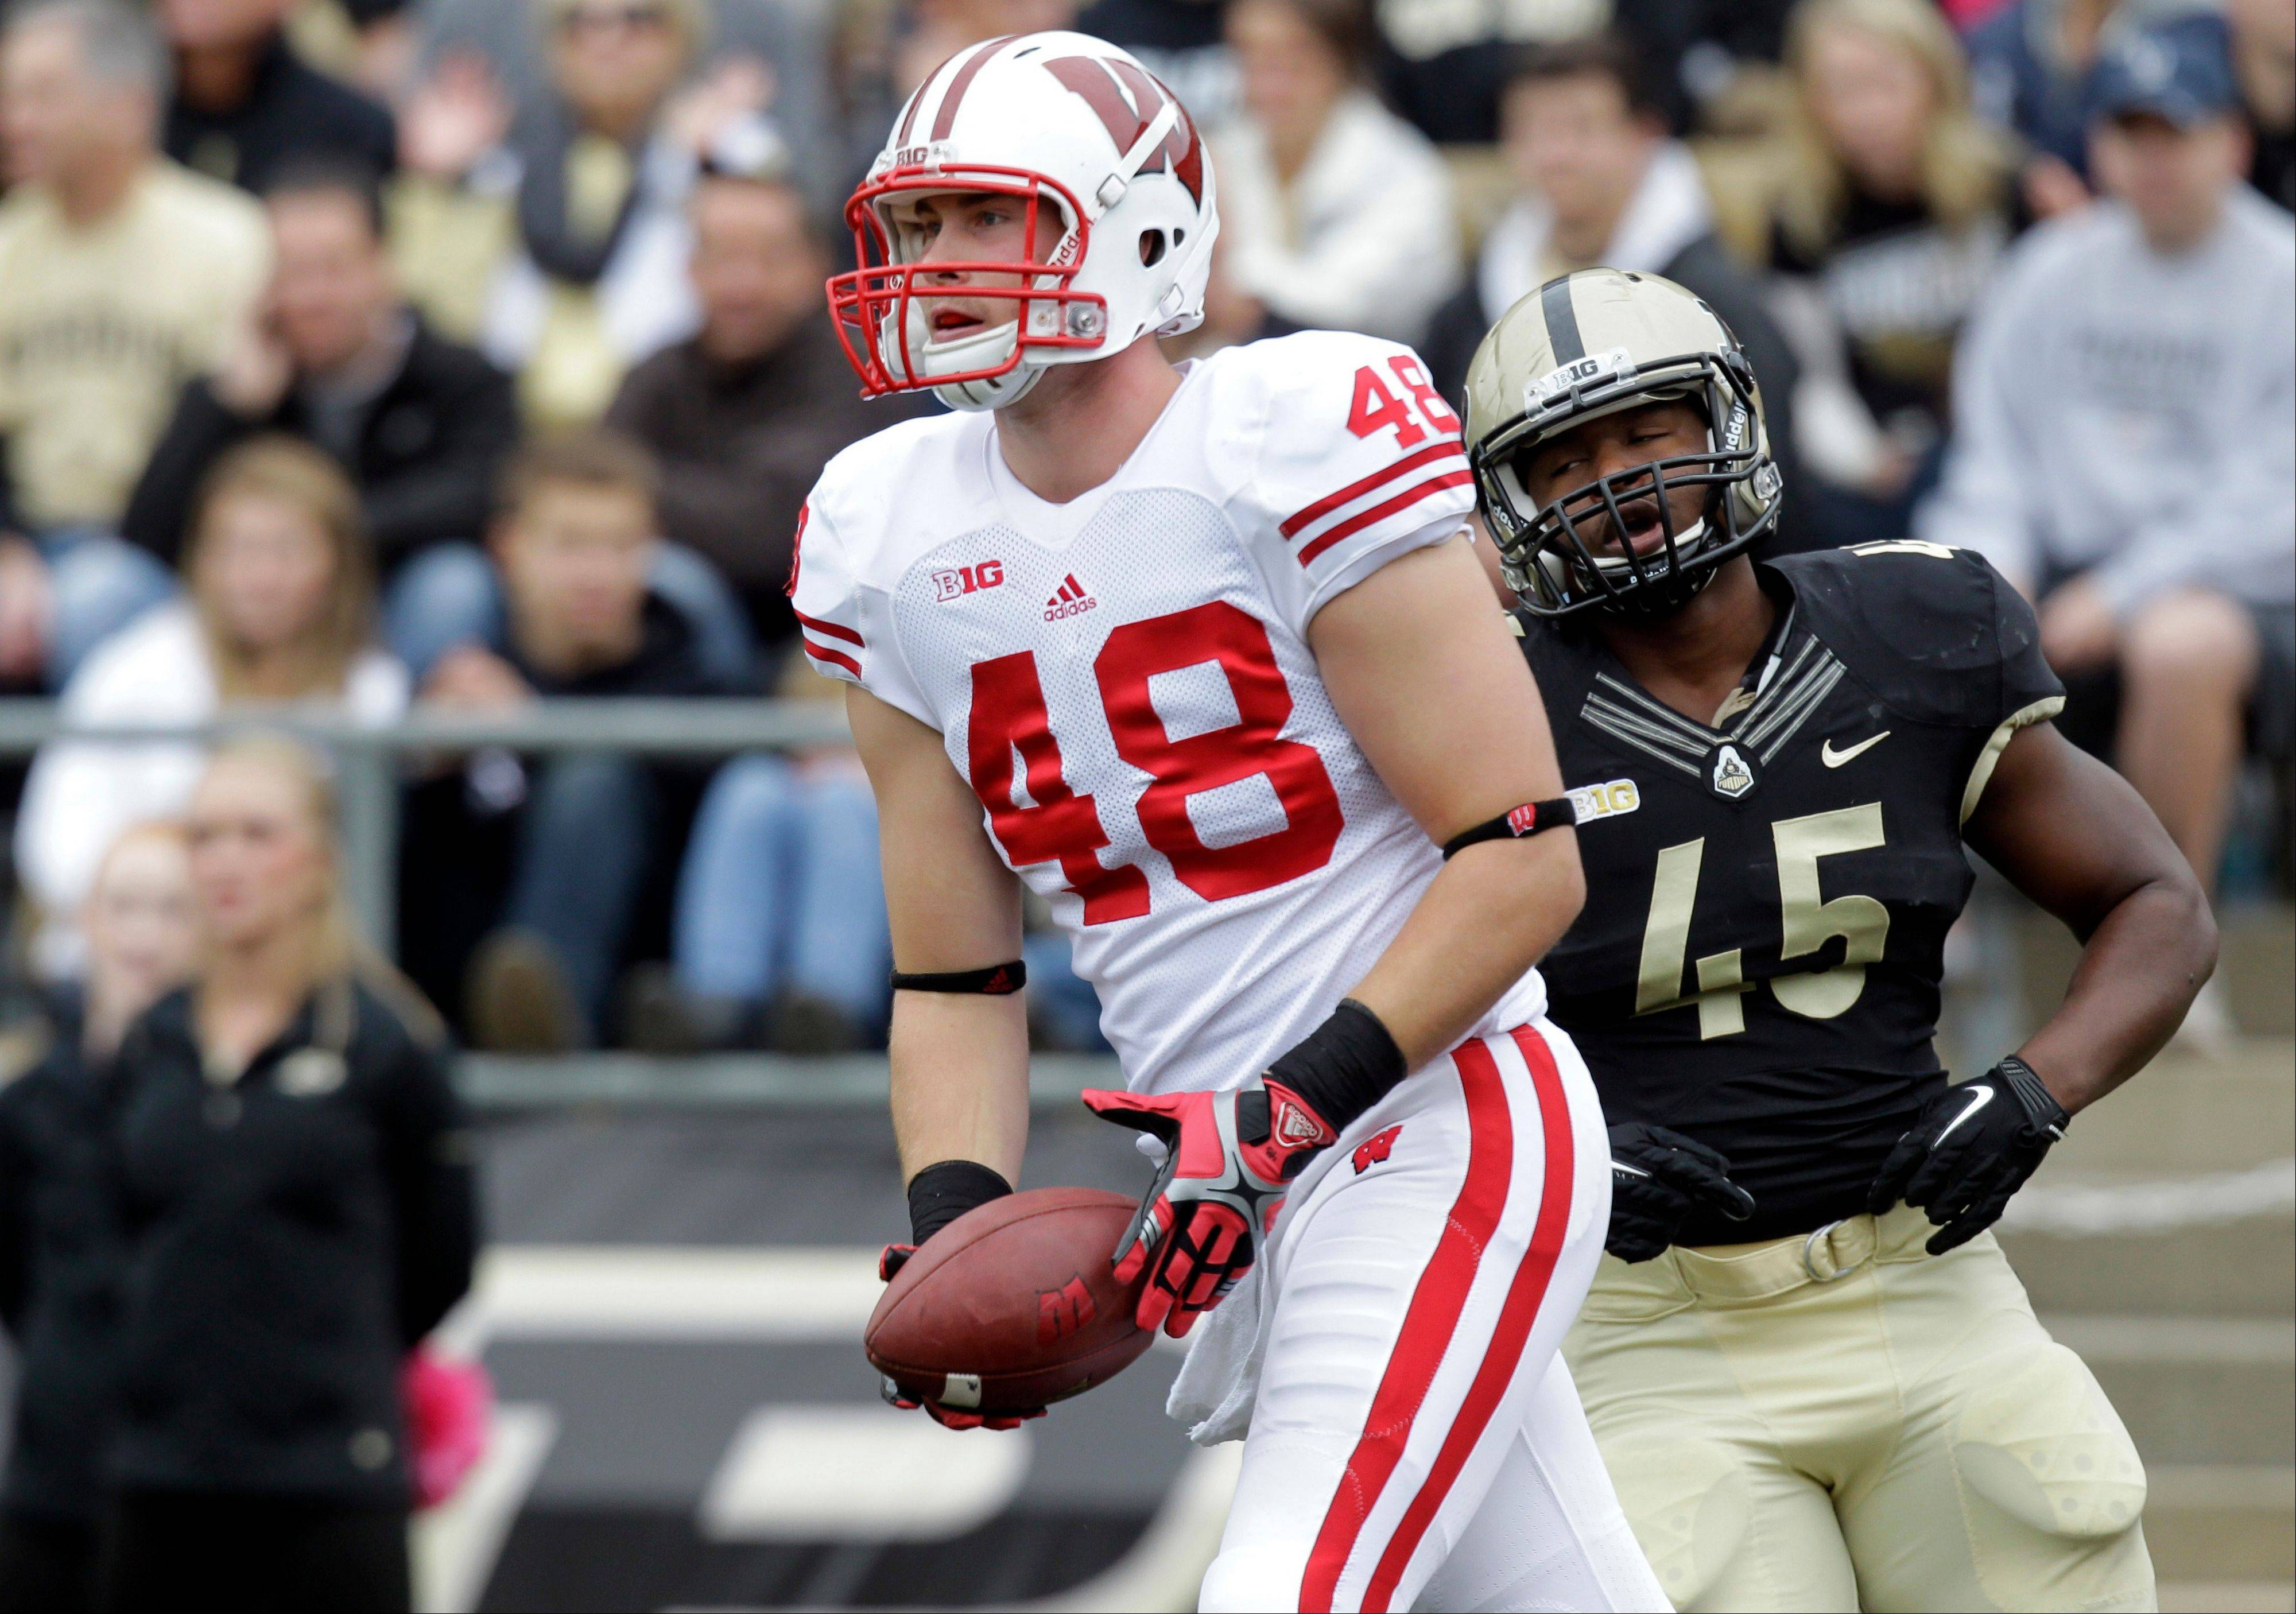 Wisconsin tight end Jacob Pedersen tosses the ball back to the officials Saturday after scoring a touchdown in front of Purdue linebacker Will Lucas during the first half in West Lafayette, Ind.